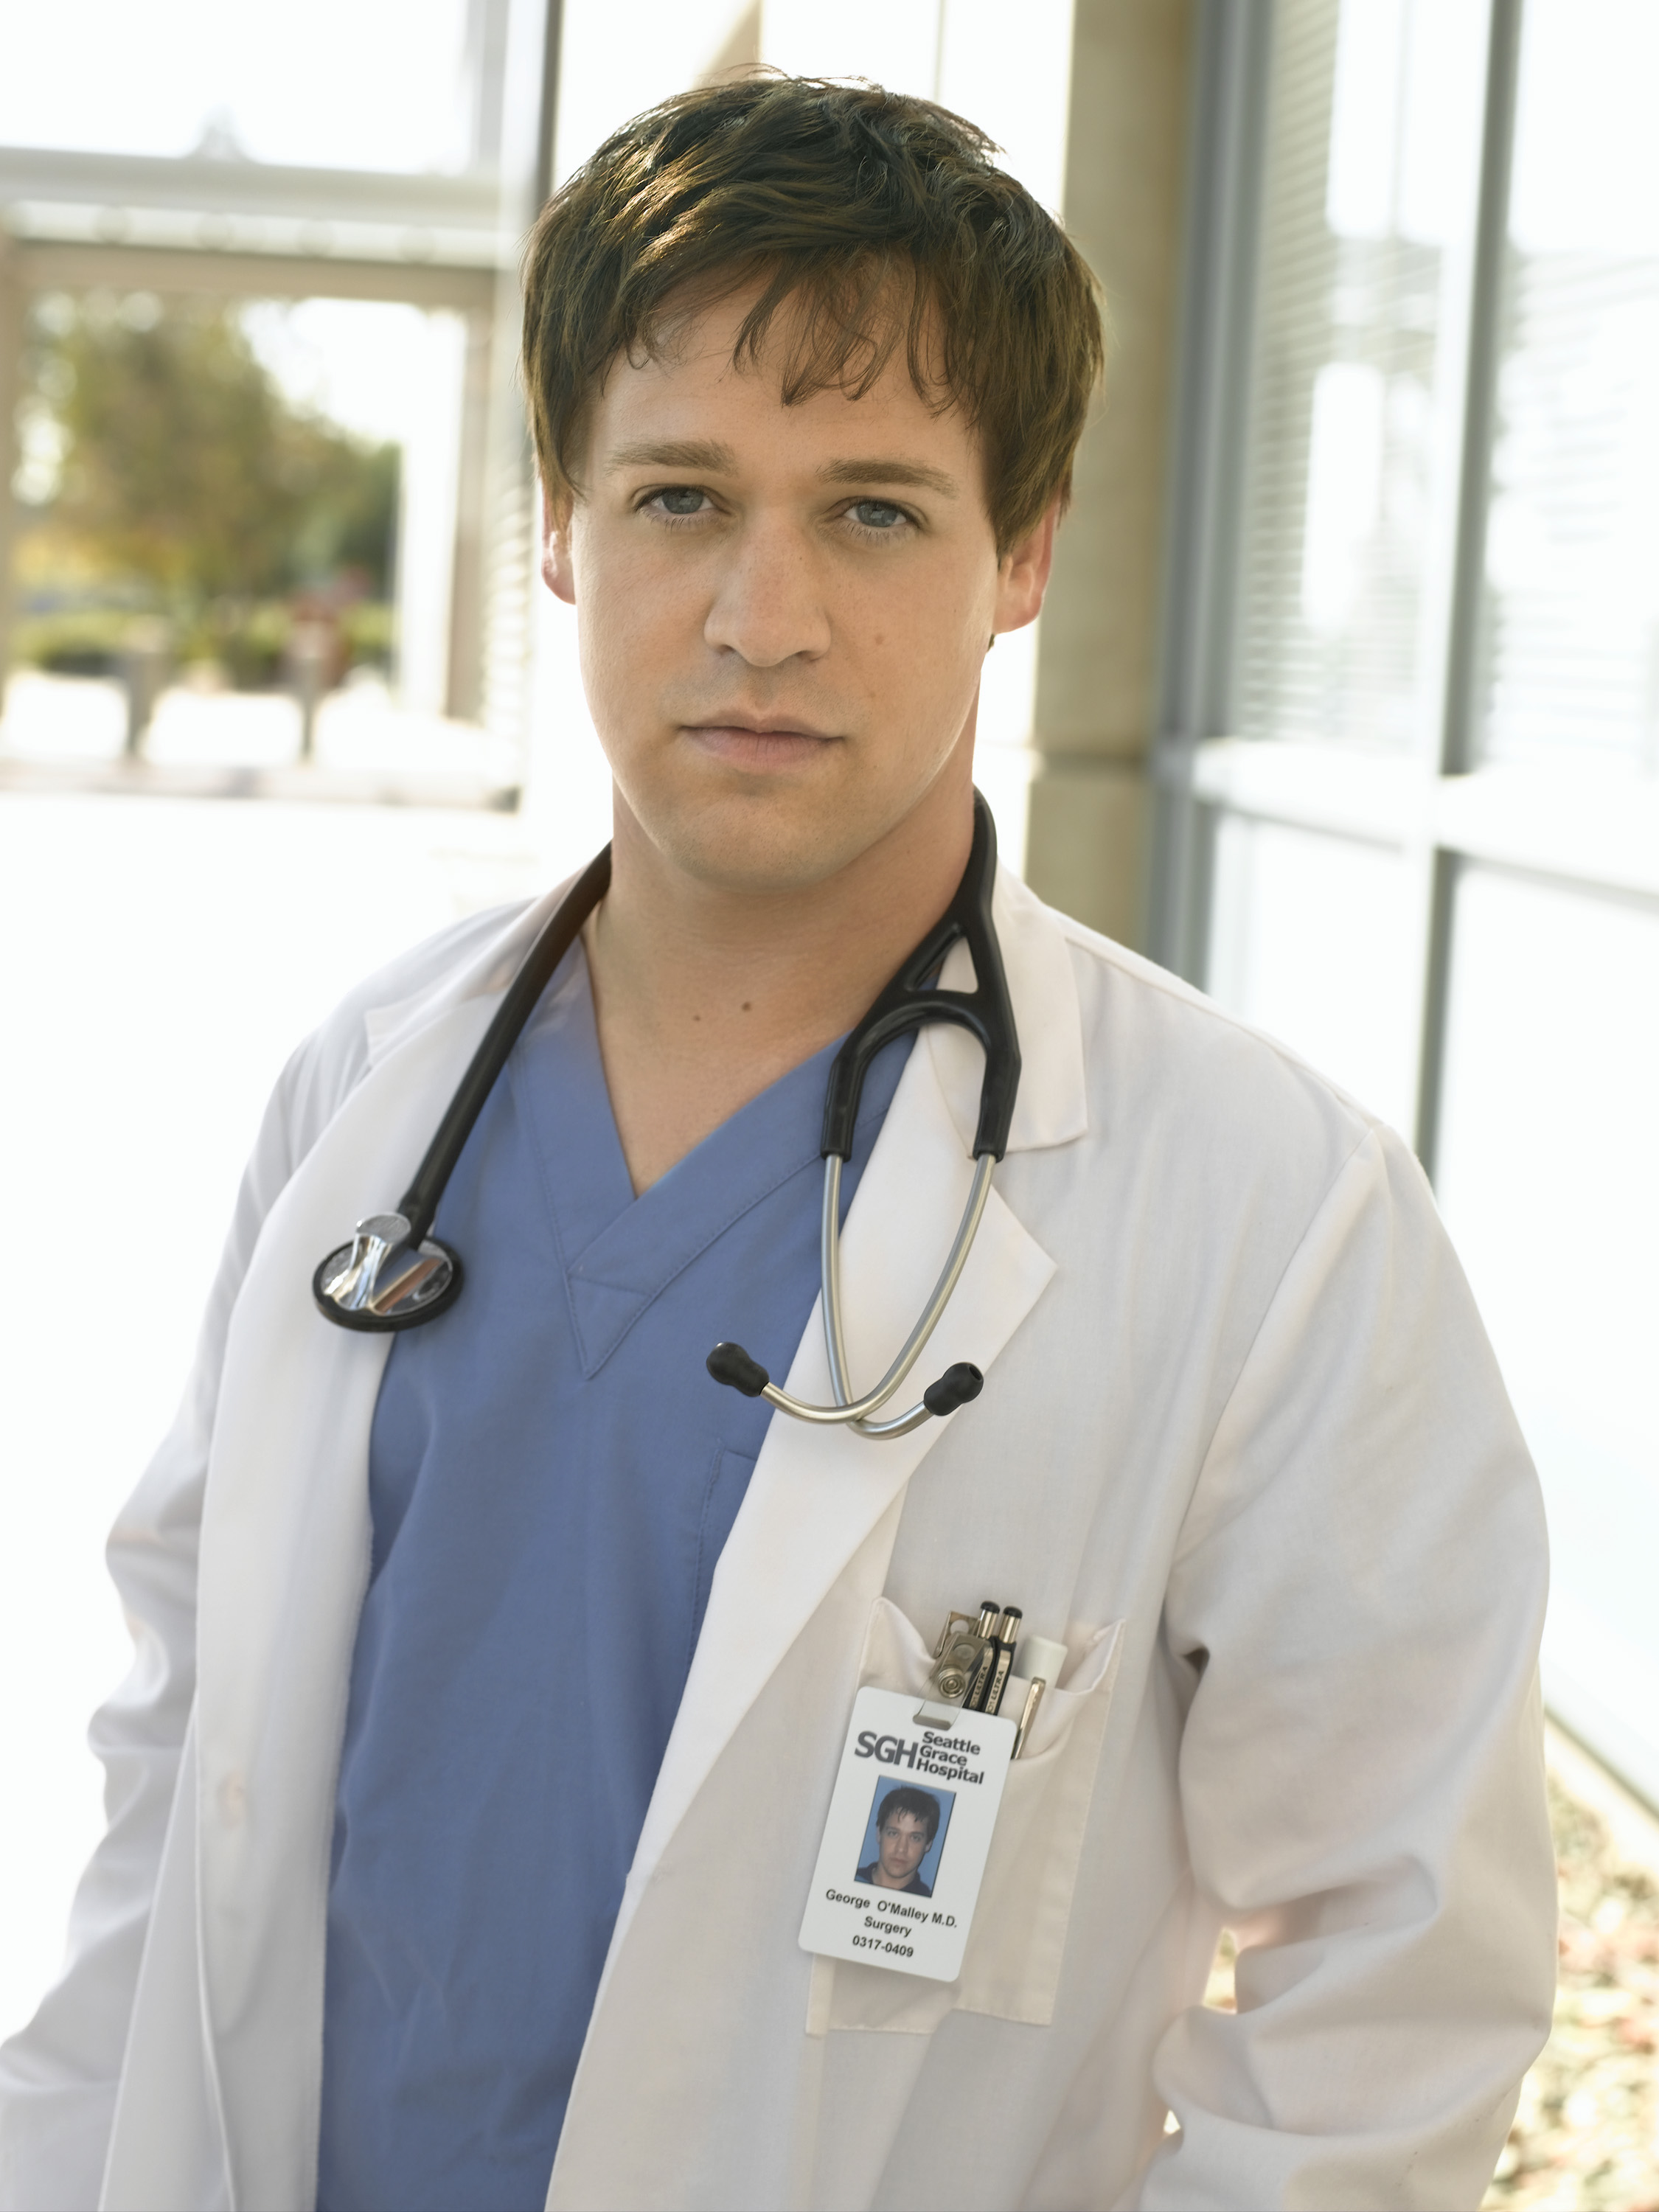 George O\'Malley | Grey\'s Anatomy MRD Wiki | FANDOM powered by Wikia